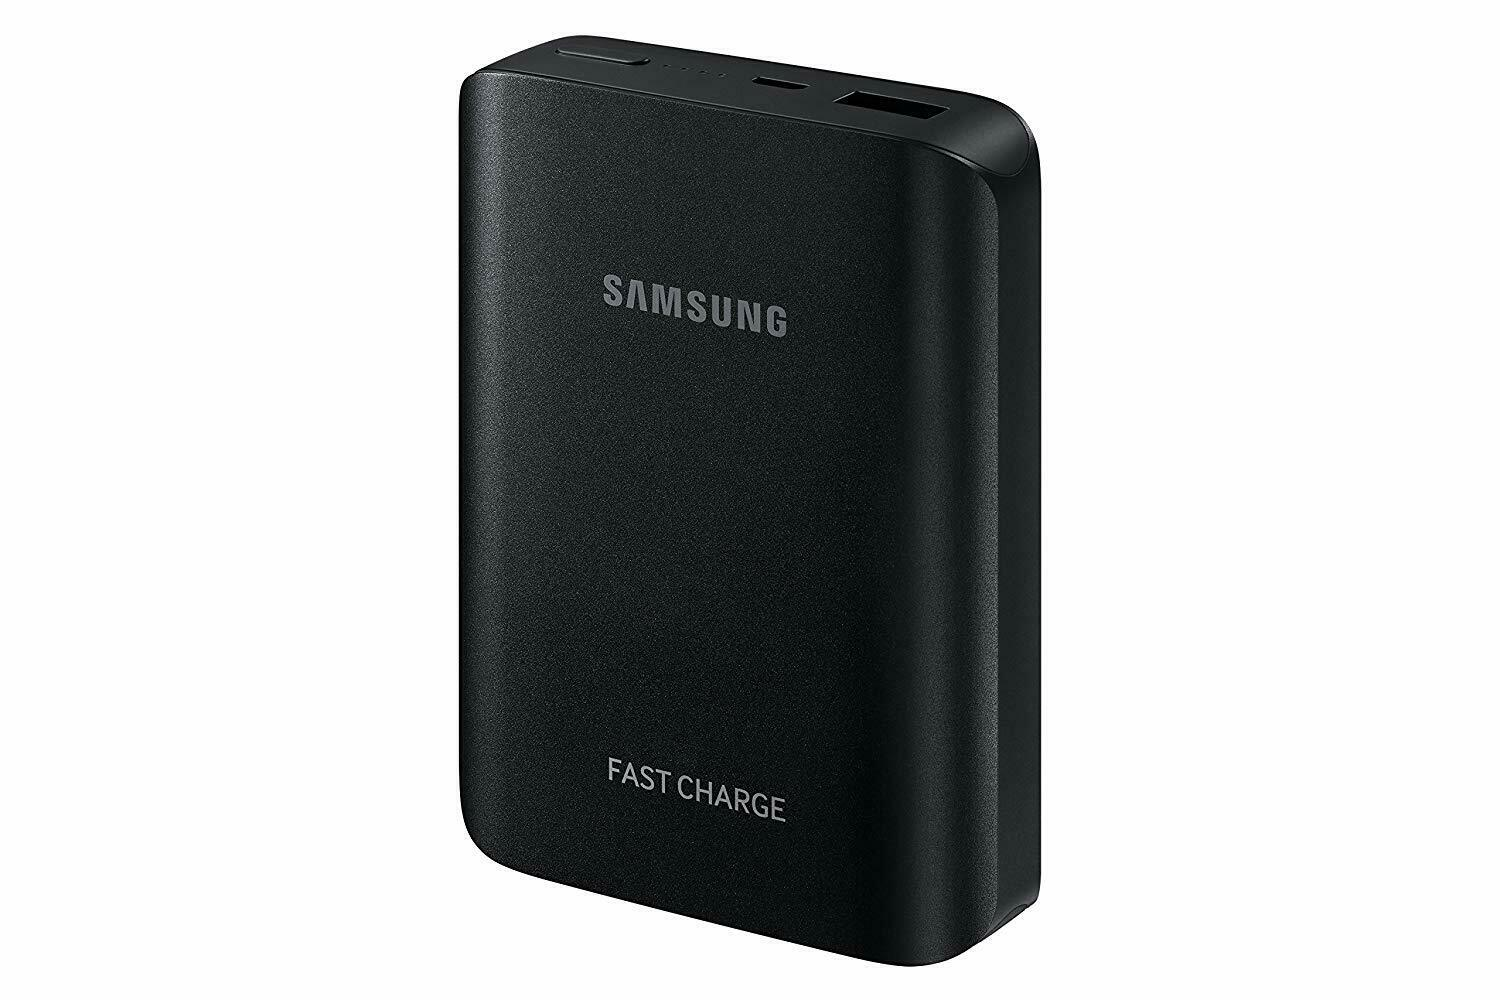 Samsung Fast Charge Battery Pack 10.2A - Black Fast Charge B